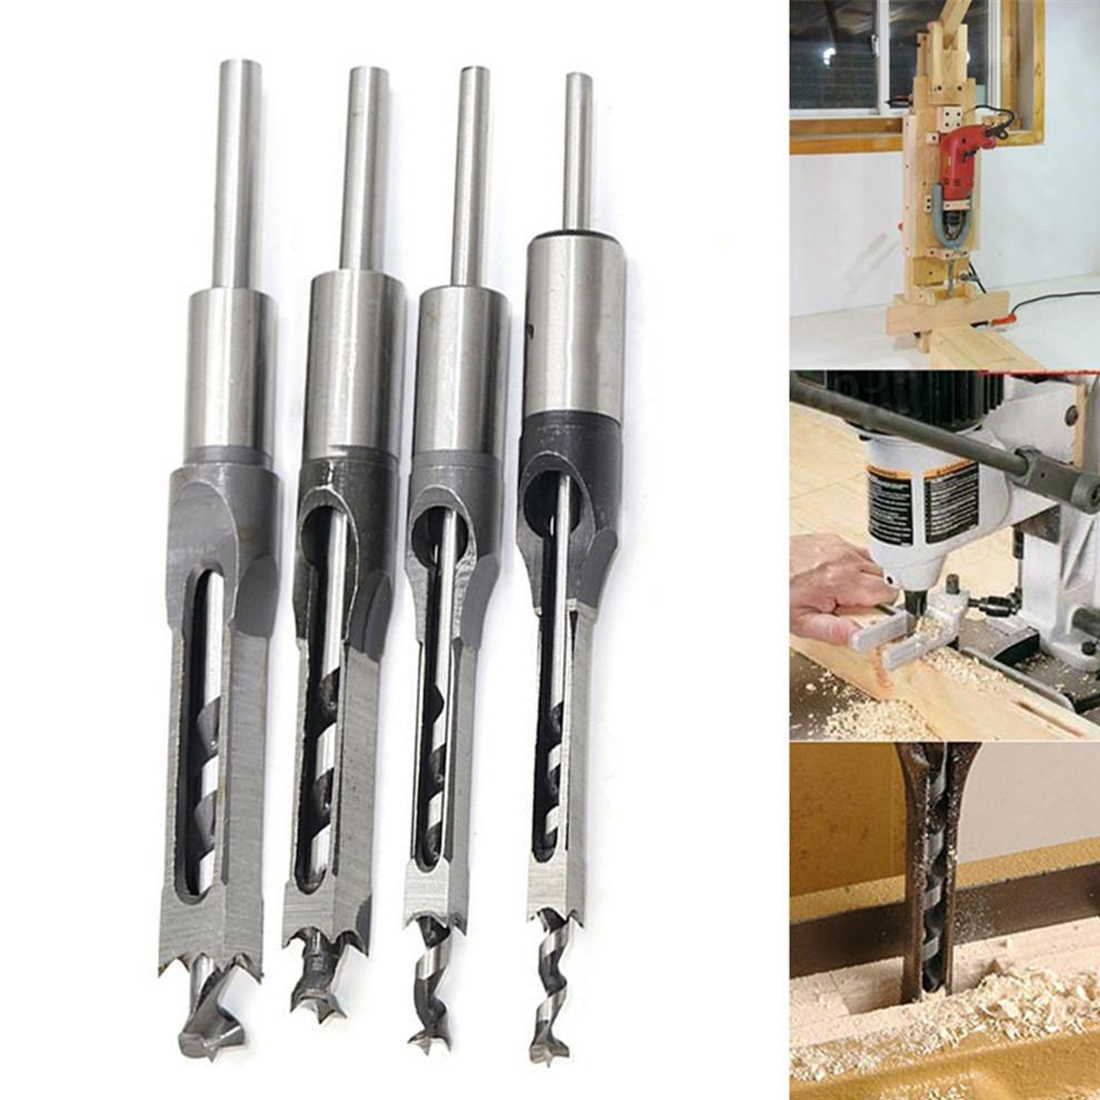 4pcs Woodworking Bit Hole Drill Carpenter Square Drill Bit Tool Guide Positioner 6.4mm 8mm 9.5mm 12.7mm